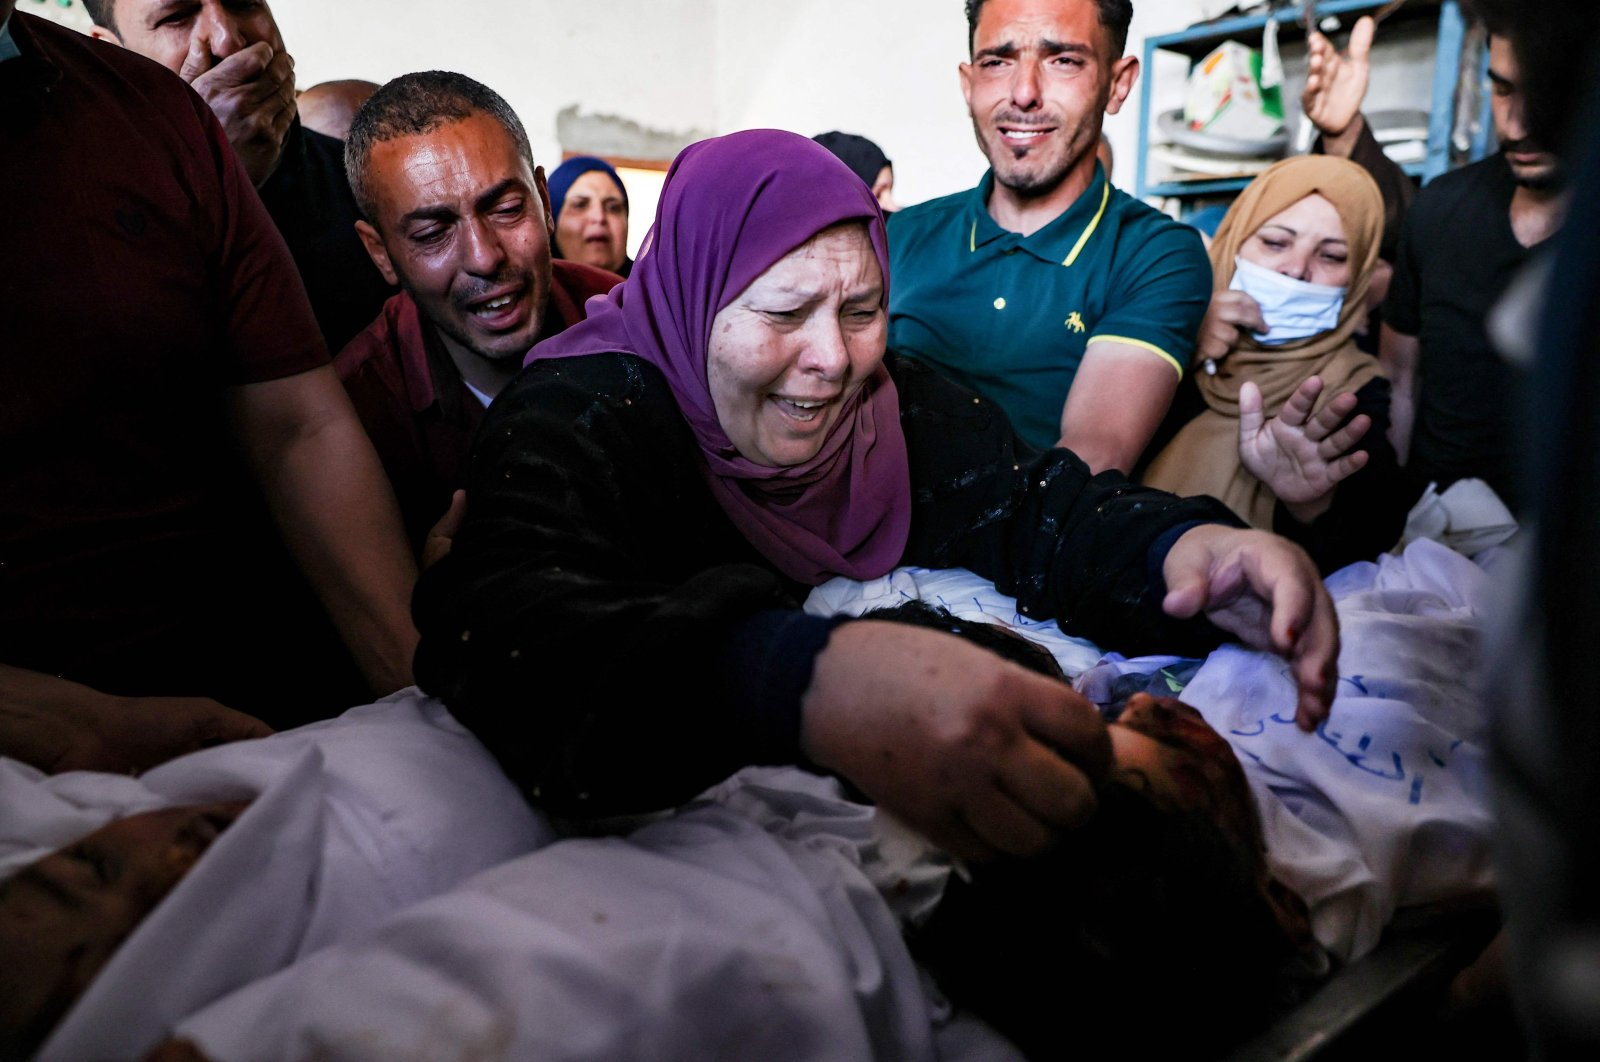 The grandmother and relatives of three children from the Al-Tanani family, killed in an Israeli airstrike, mourn over their bodies, before their burial in Beit Lahya in northern Gaza Strip, Palestine, May 14, 2021. (AFP Photo)